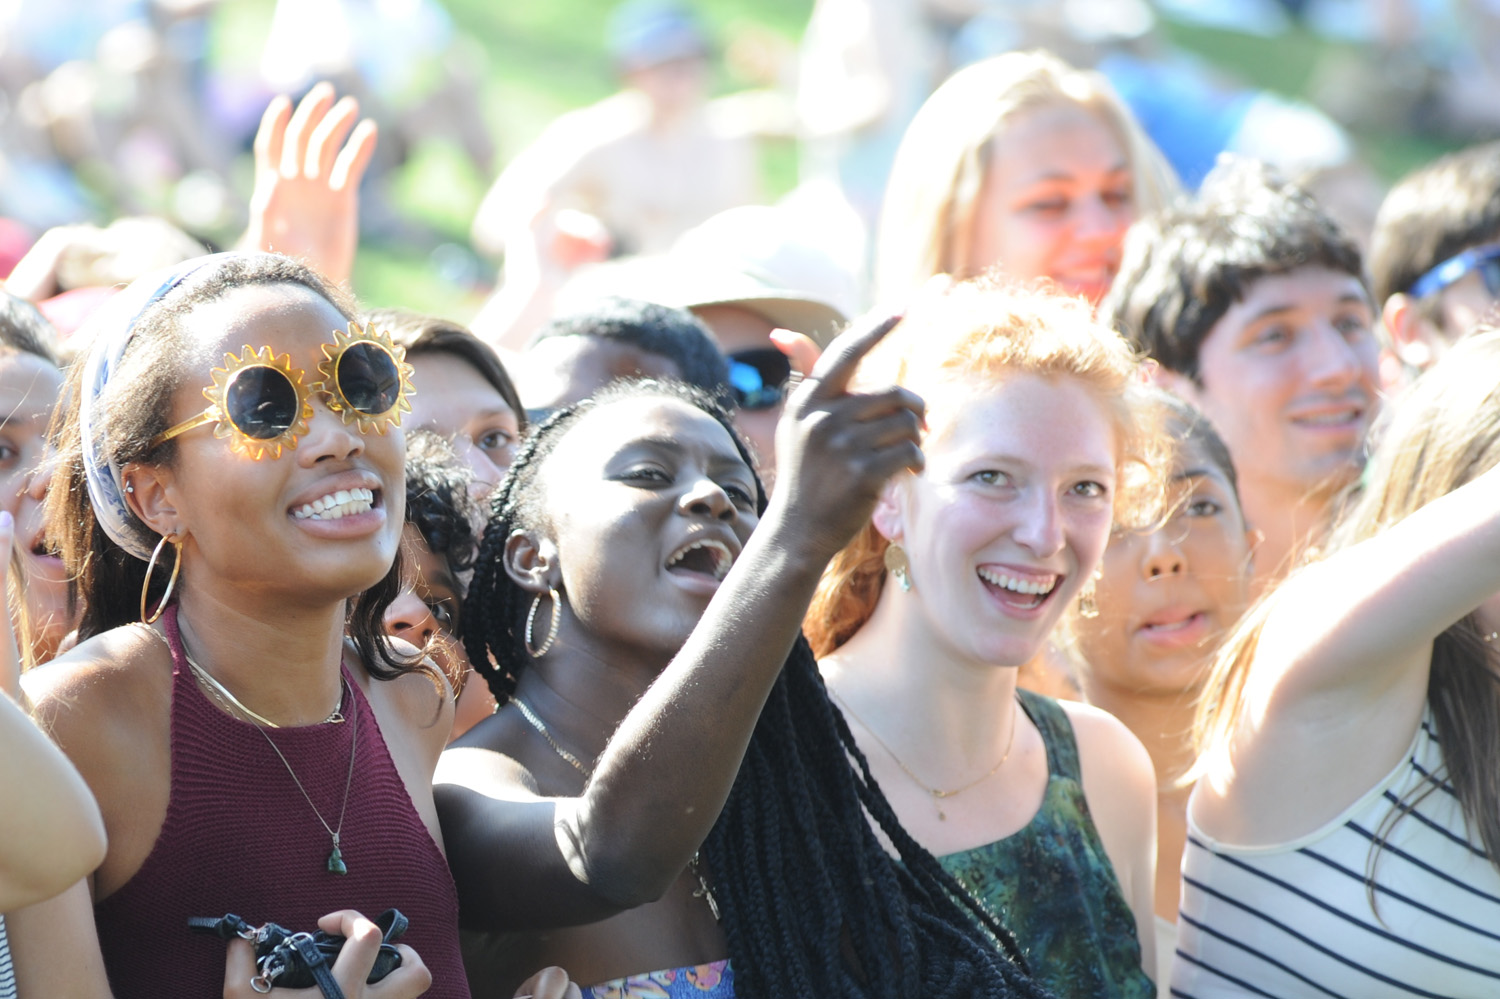 On May 7, students celebrated Spring Fling at Wesleyan University.